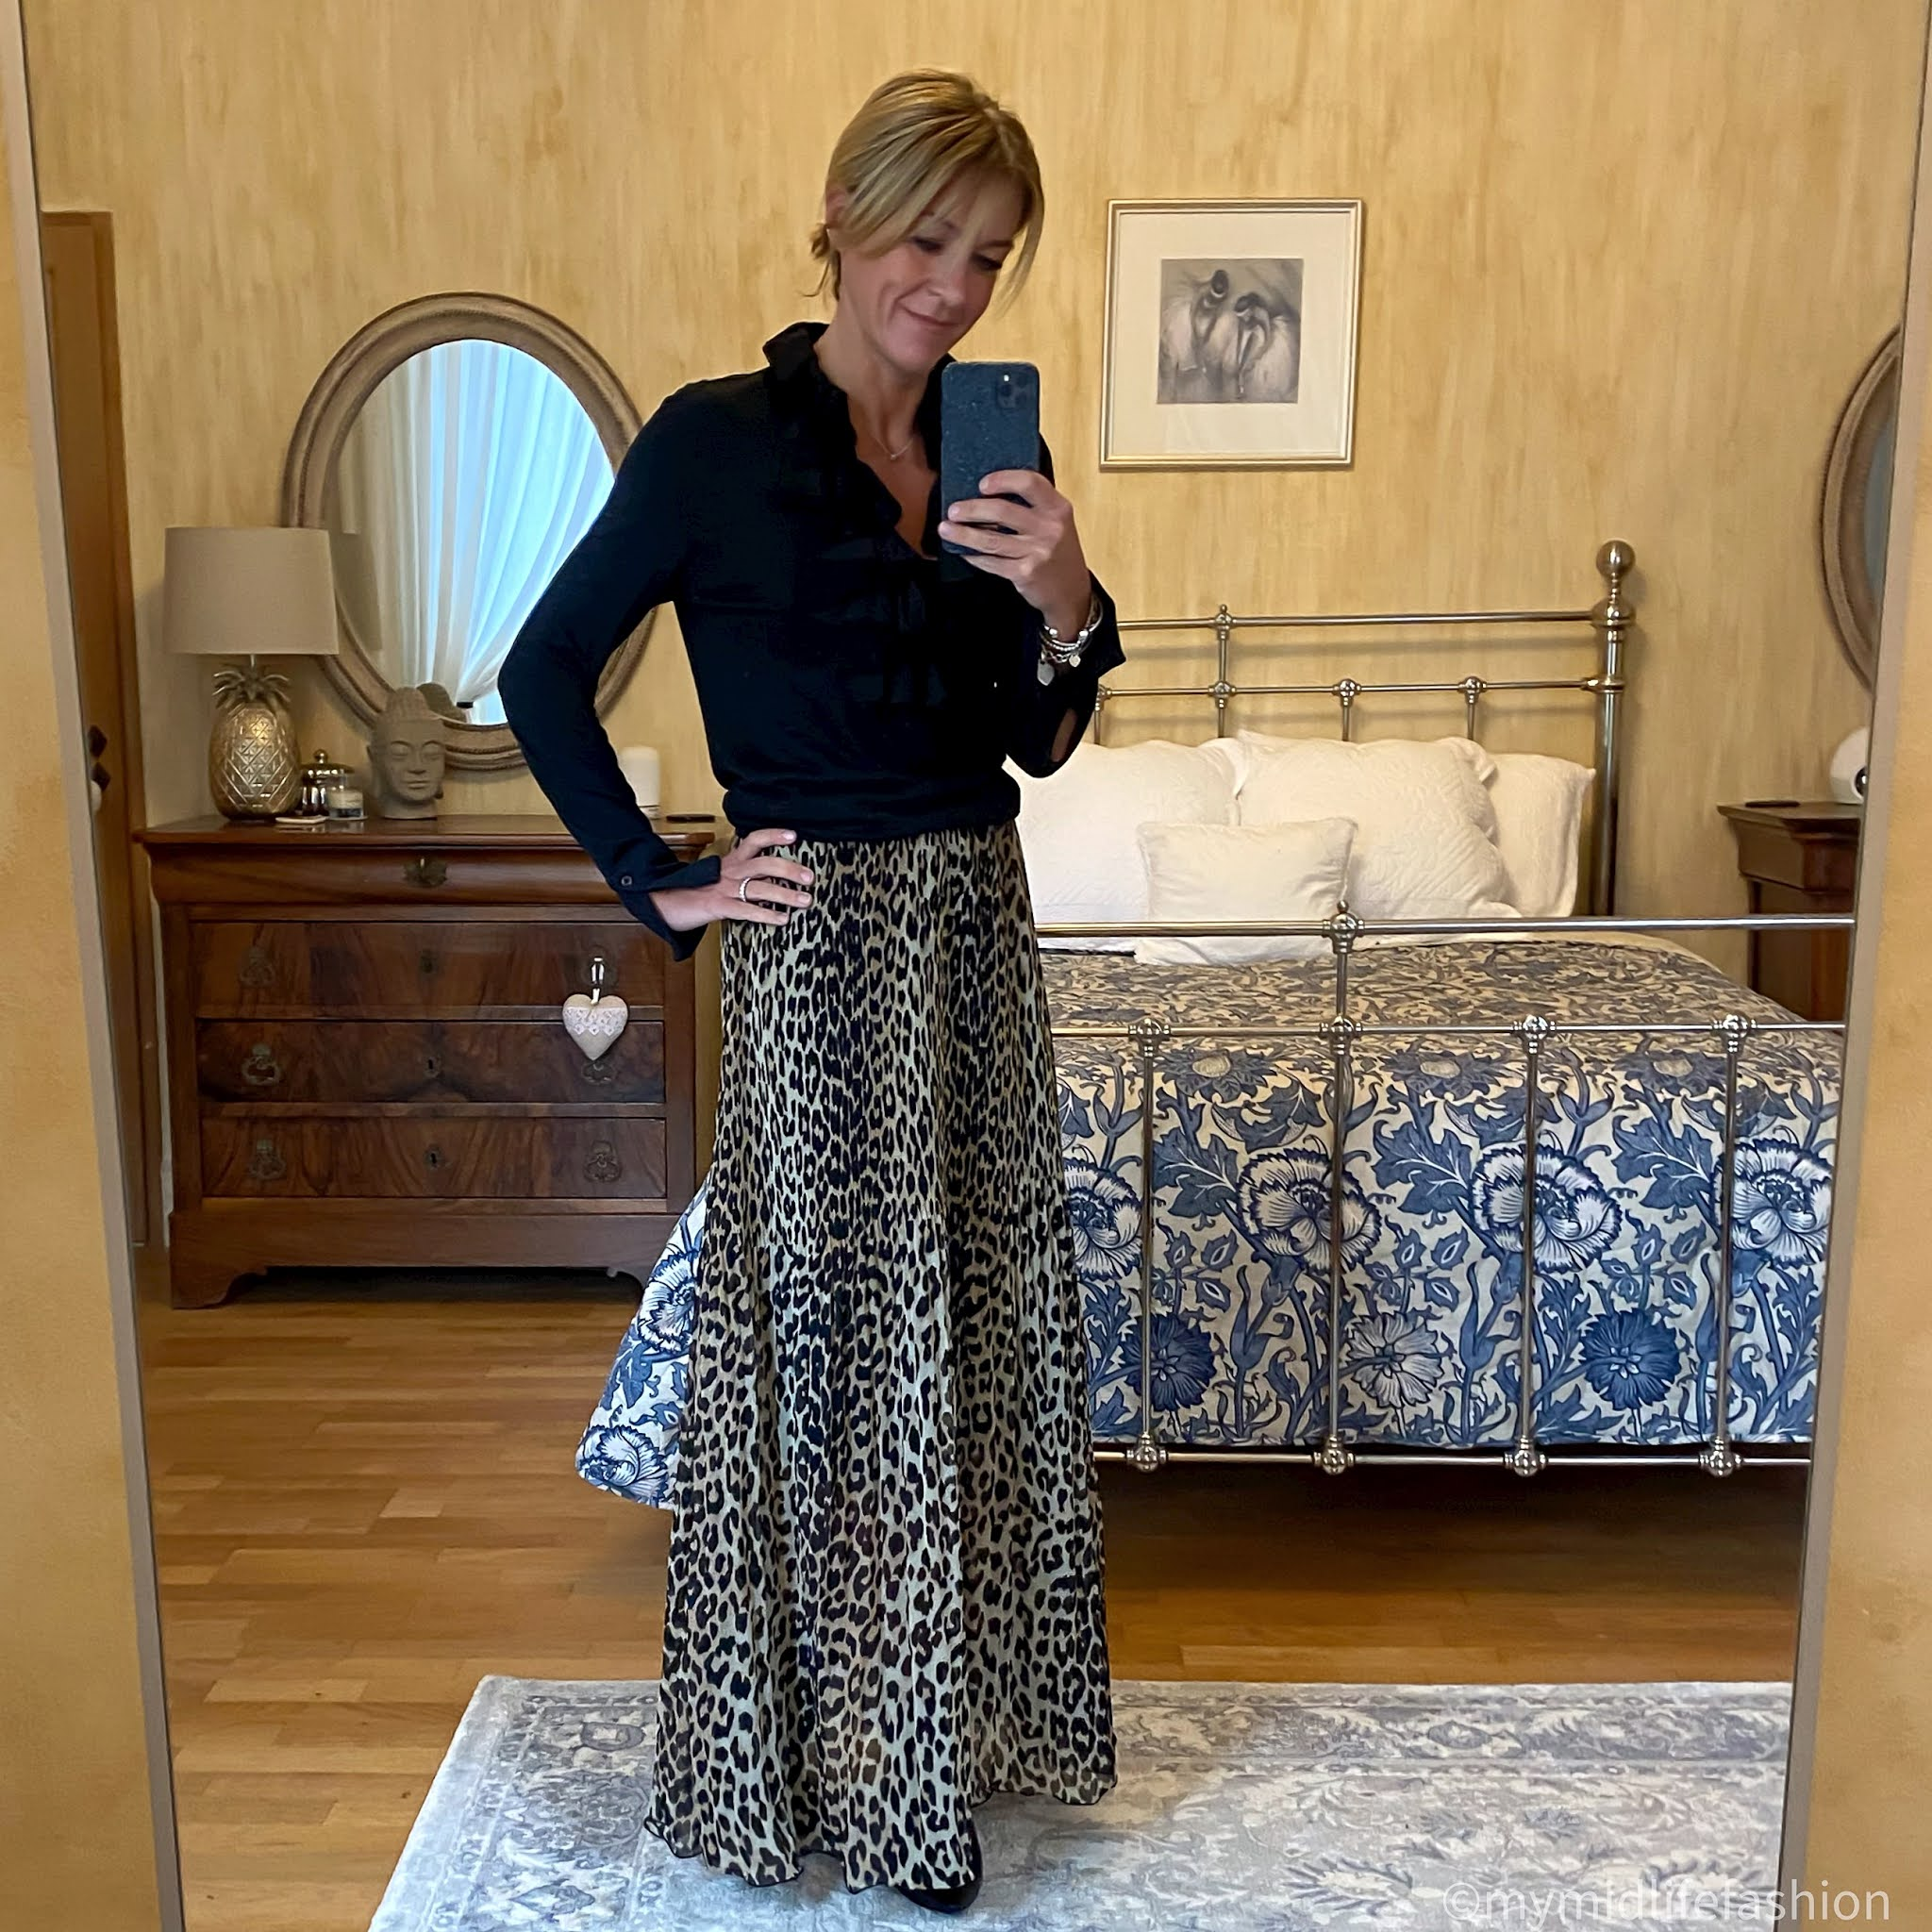 my midlife fashion, sole bliss Brooke black leather ankle boot, Ralph Lauren ruffle blouse, ganni pleated leopard print maxi skirt